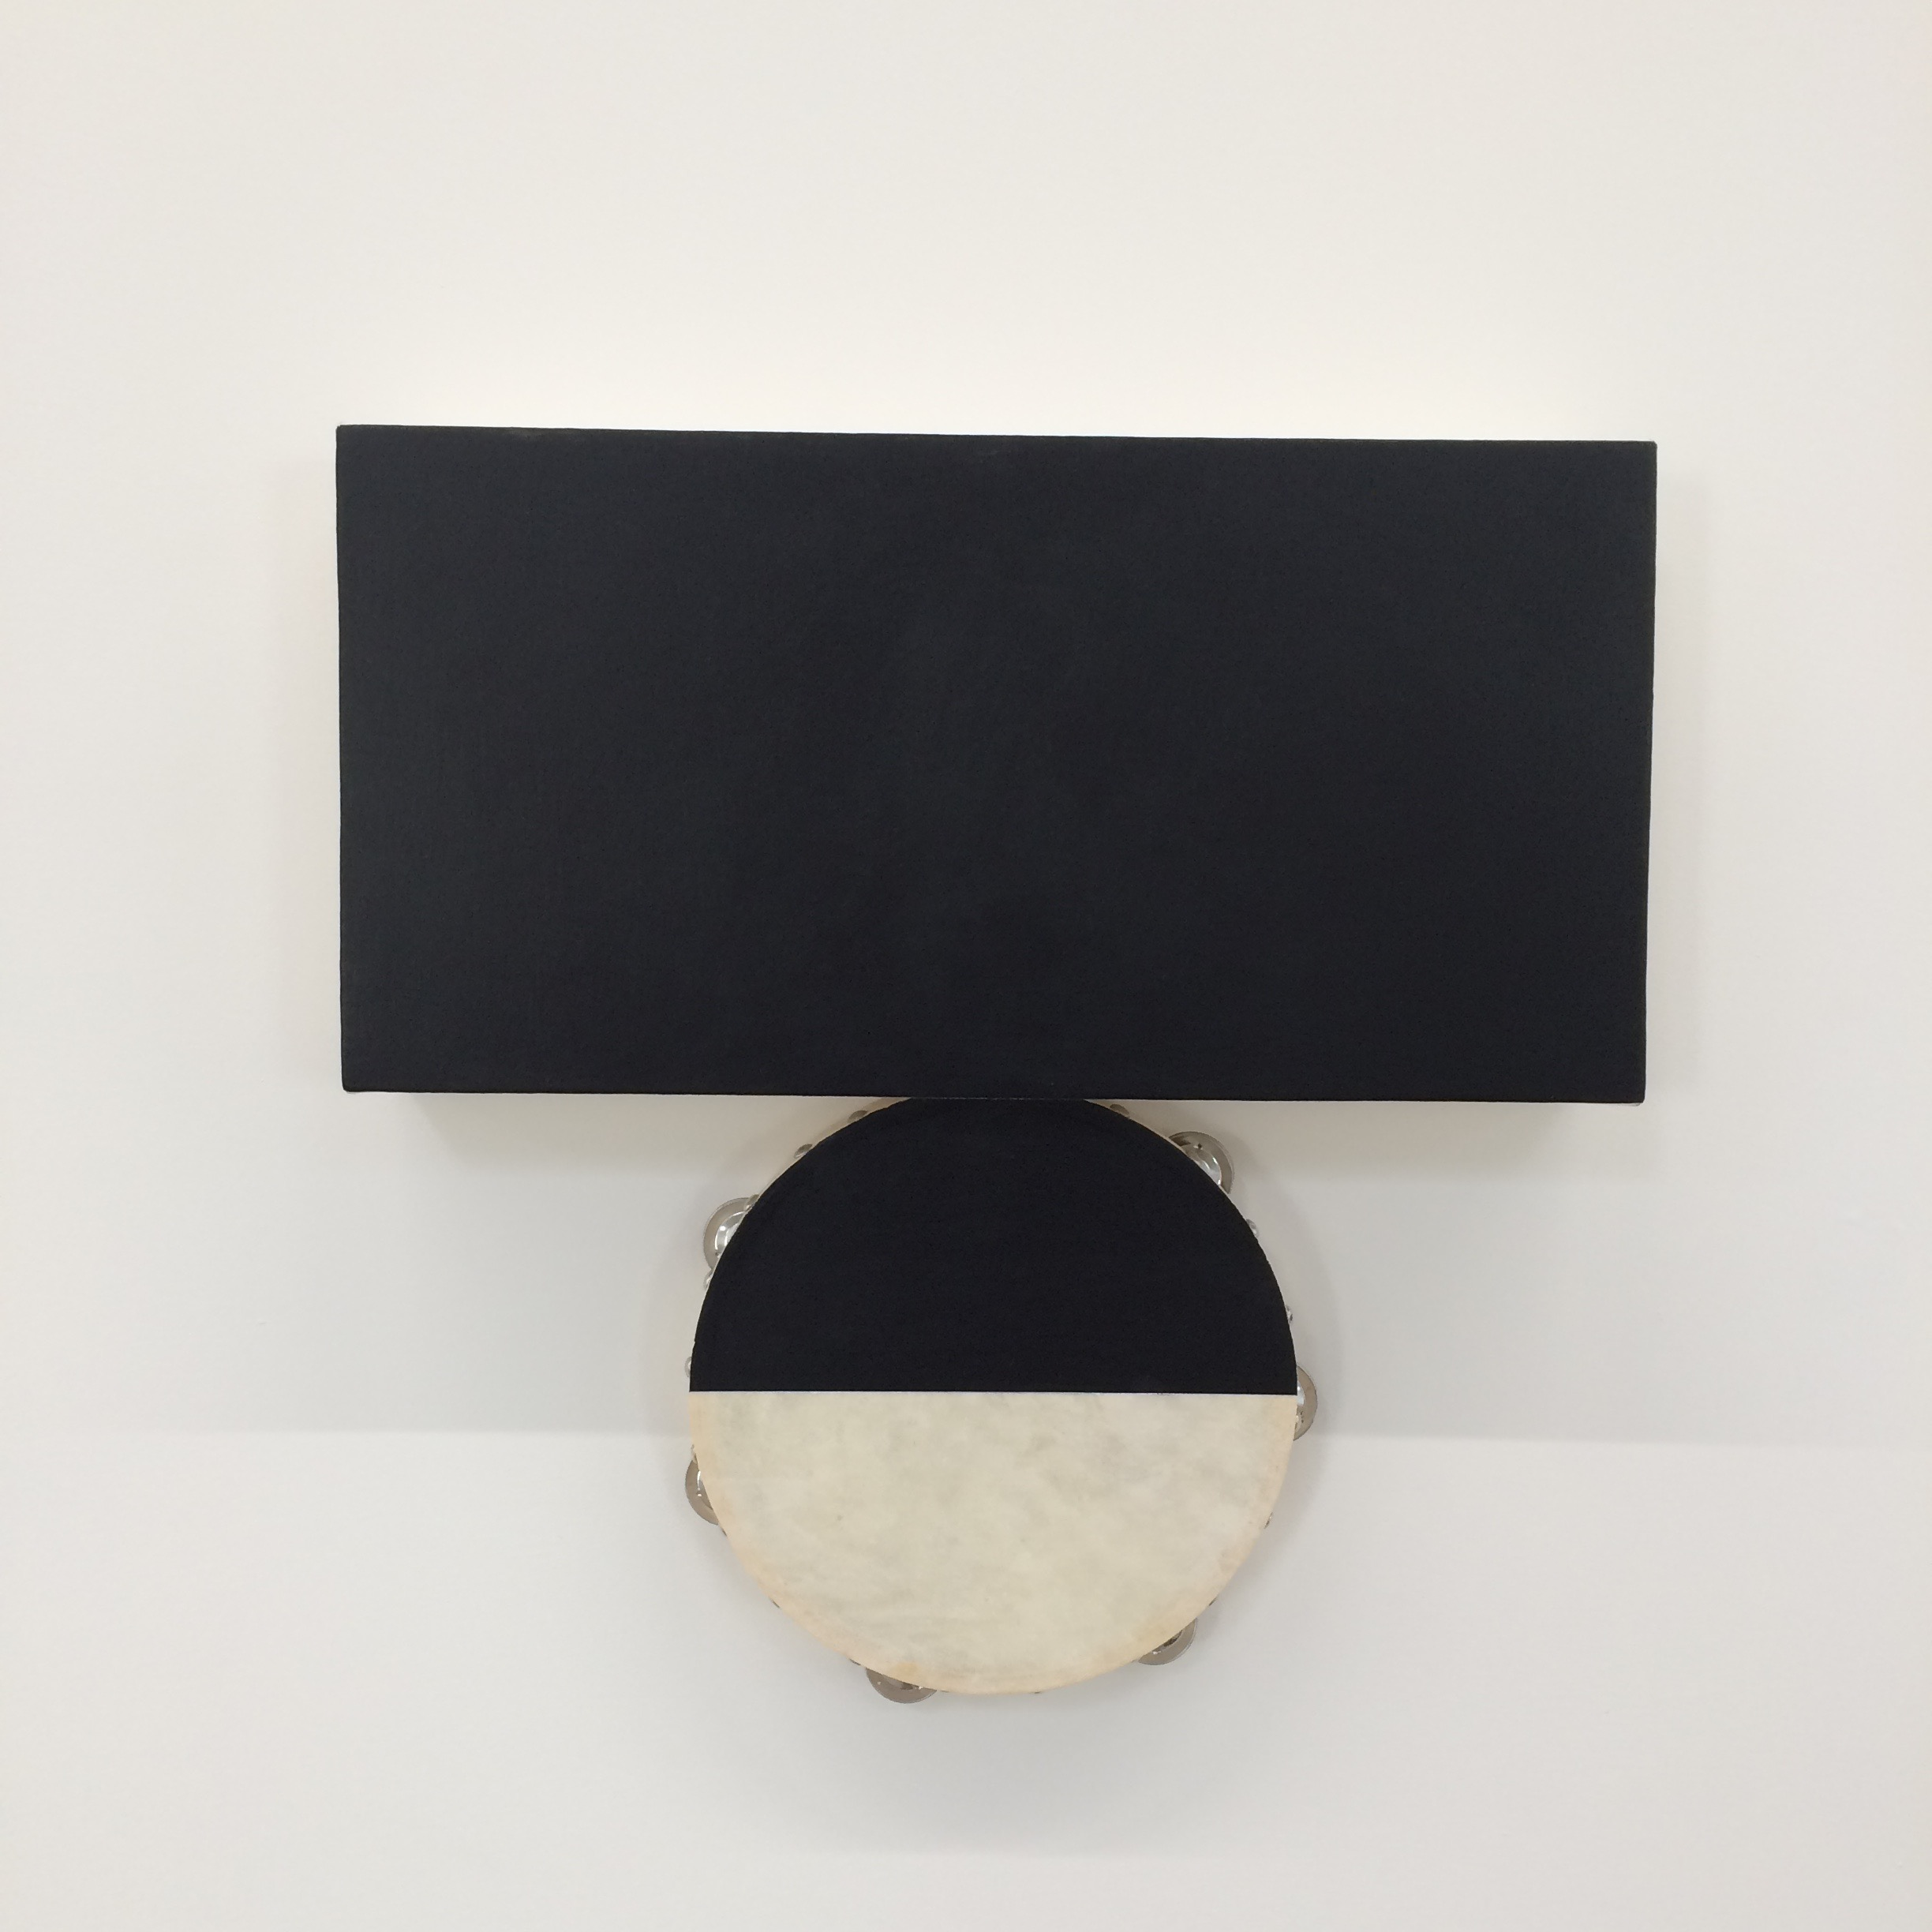 Paul Lee, Either Side of the Night, 2016. Tambourine, acrylic, and canvas, 20 1/2 x 20 1/2 x 3 1/2 inches. Courtesy of the artist and Maccarone, Los Angeles.